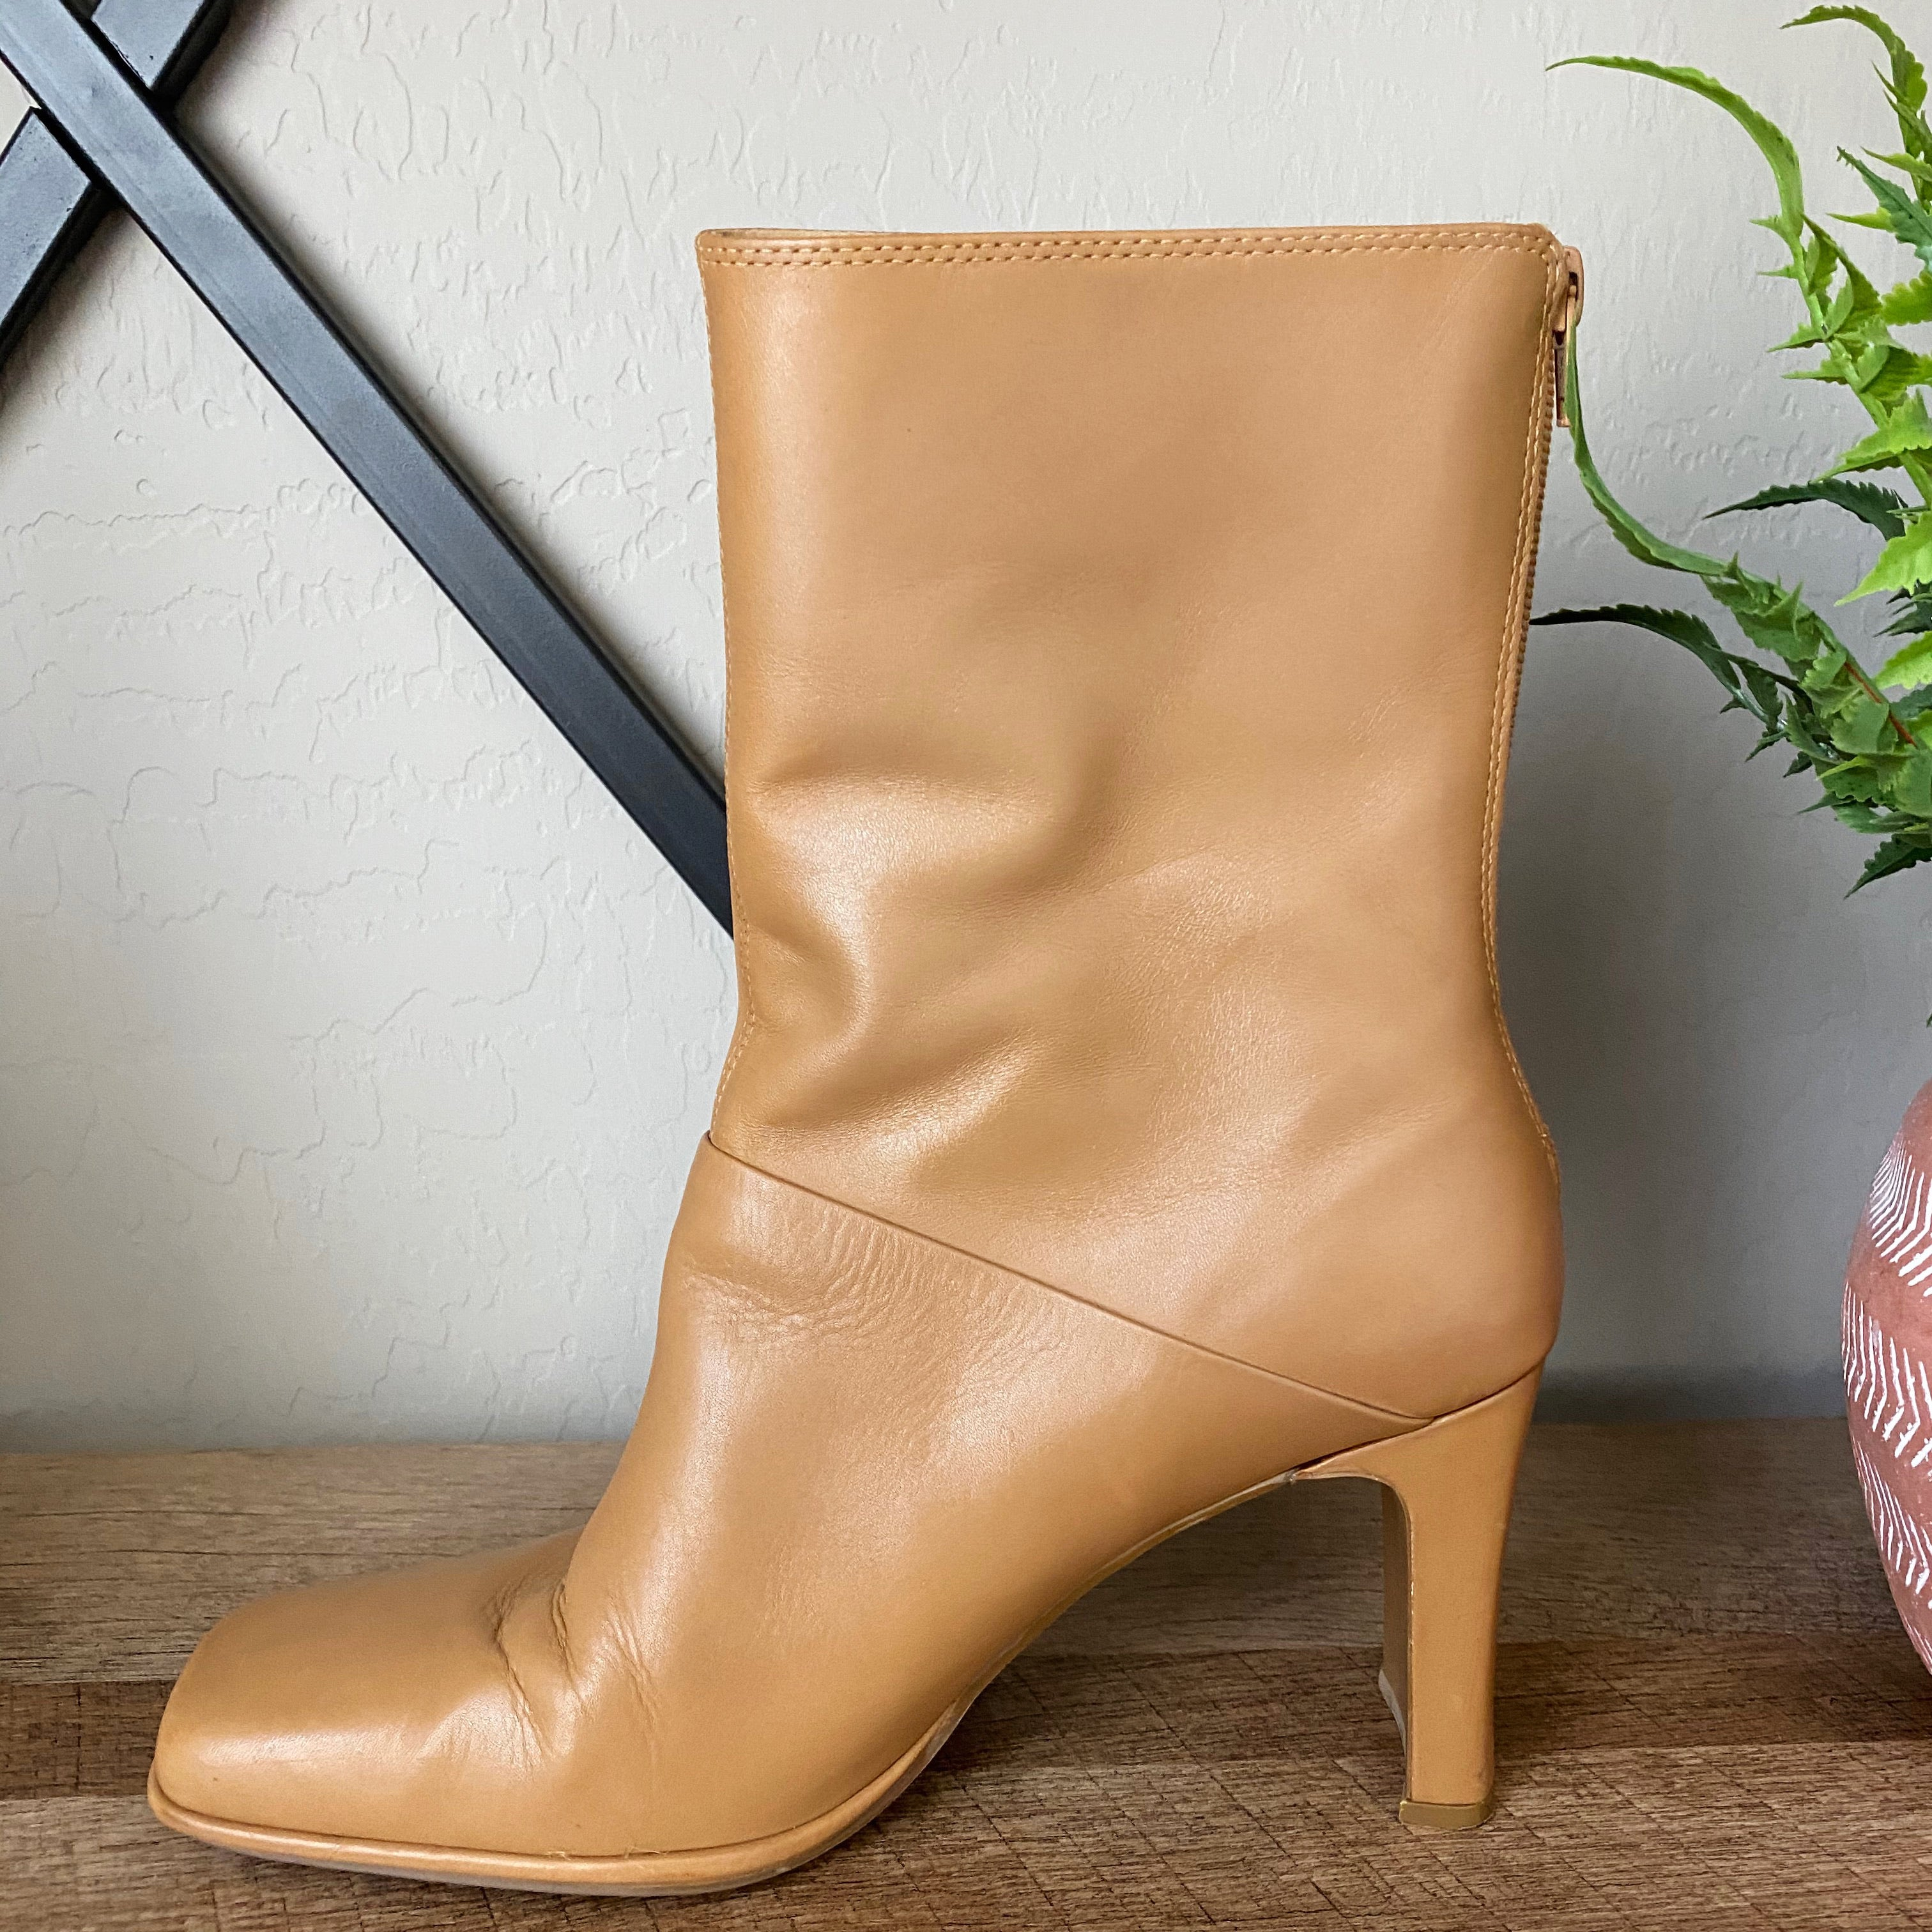 Amanda Smith Fate Leather Vintage Heeled Boots